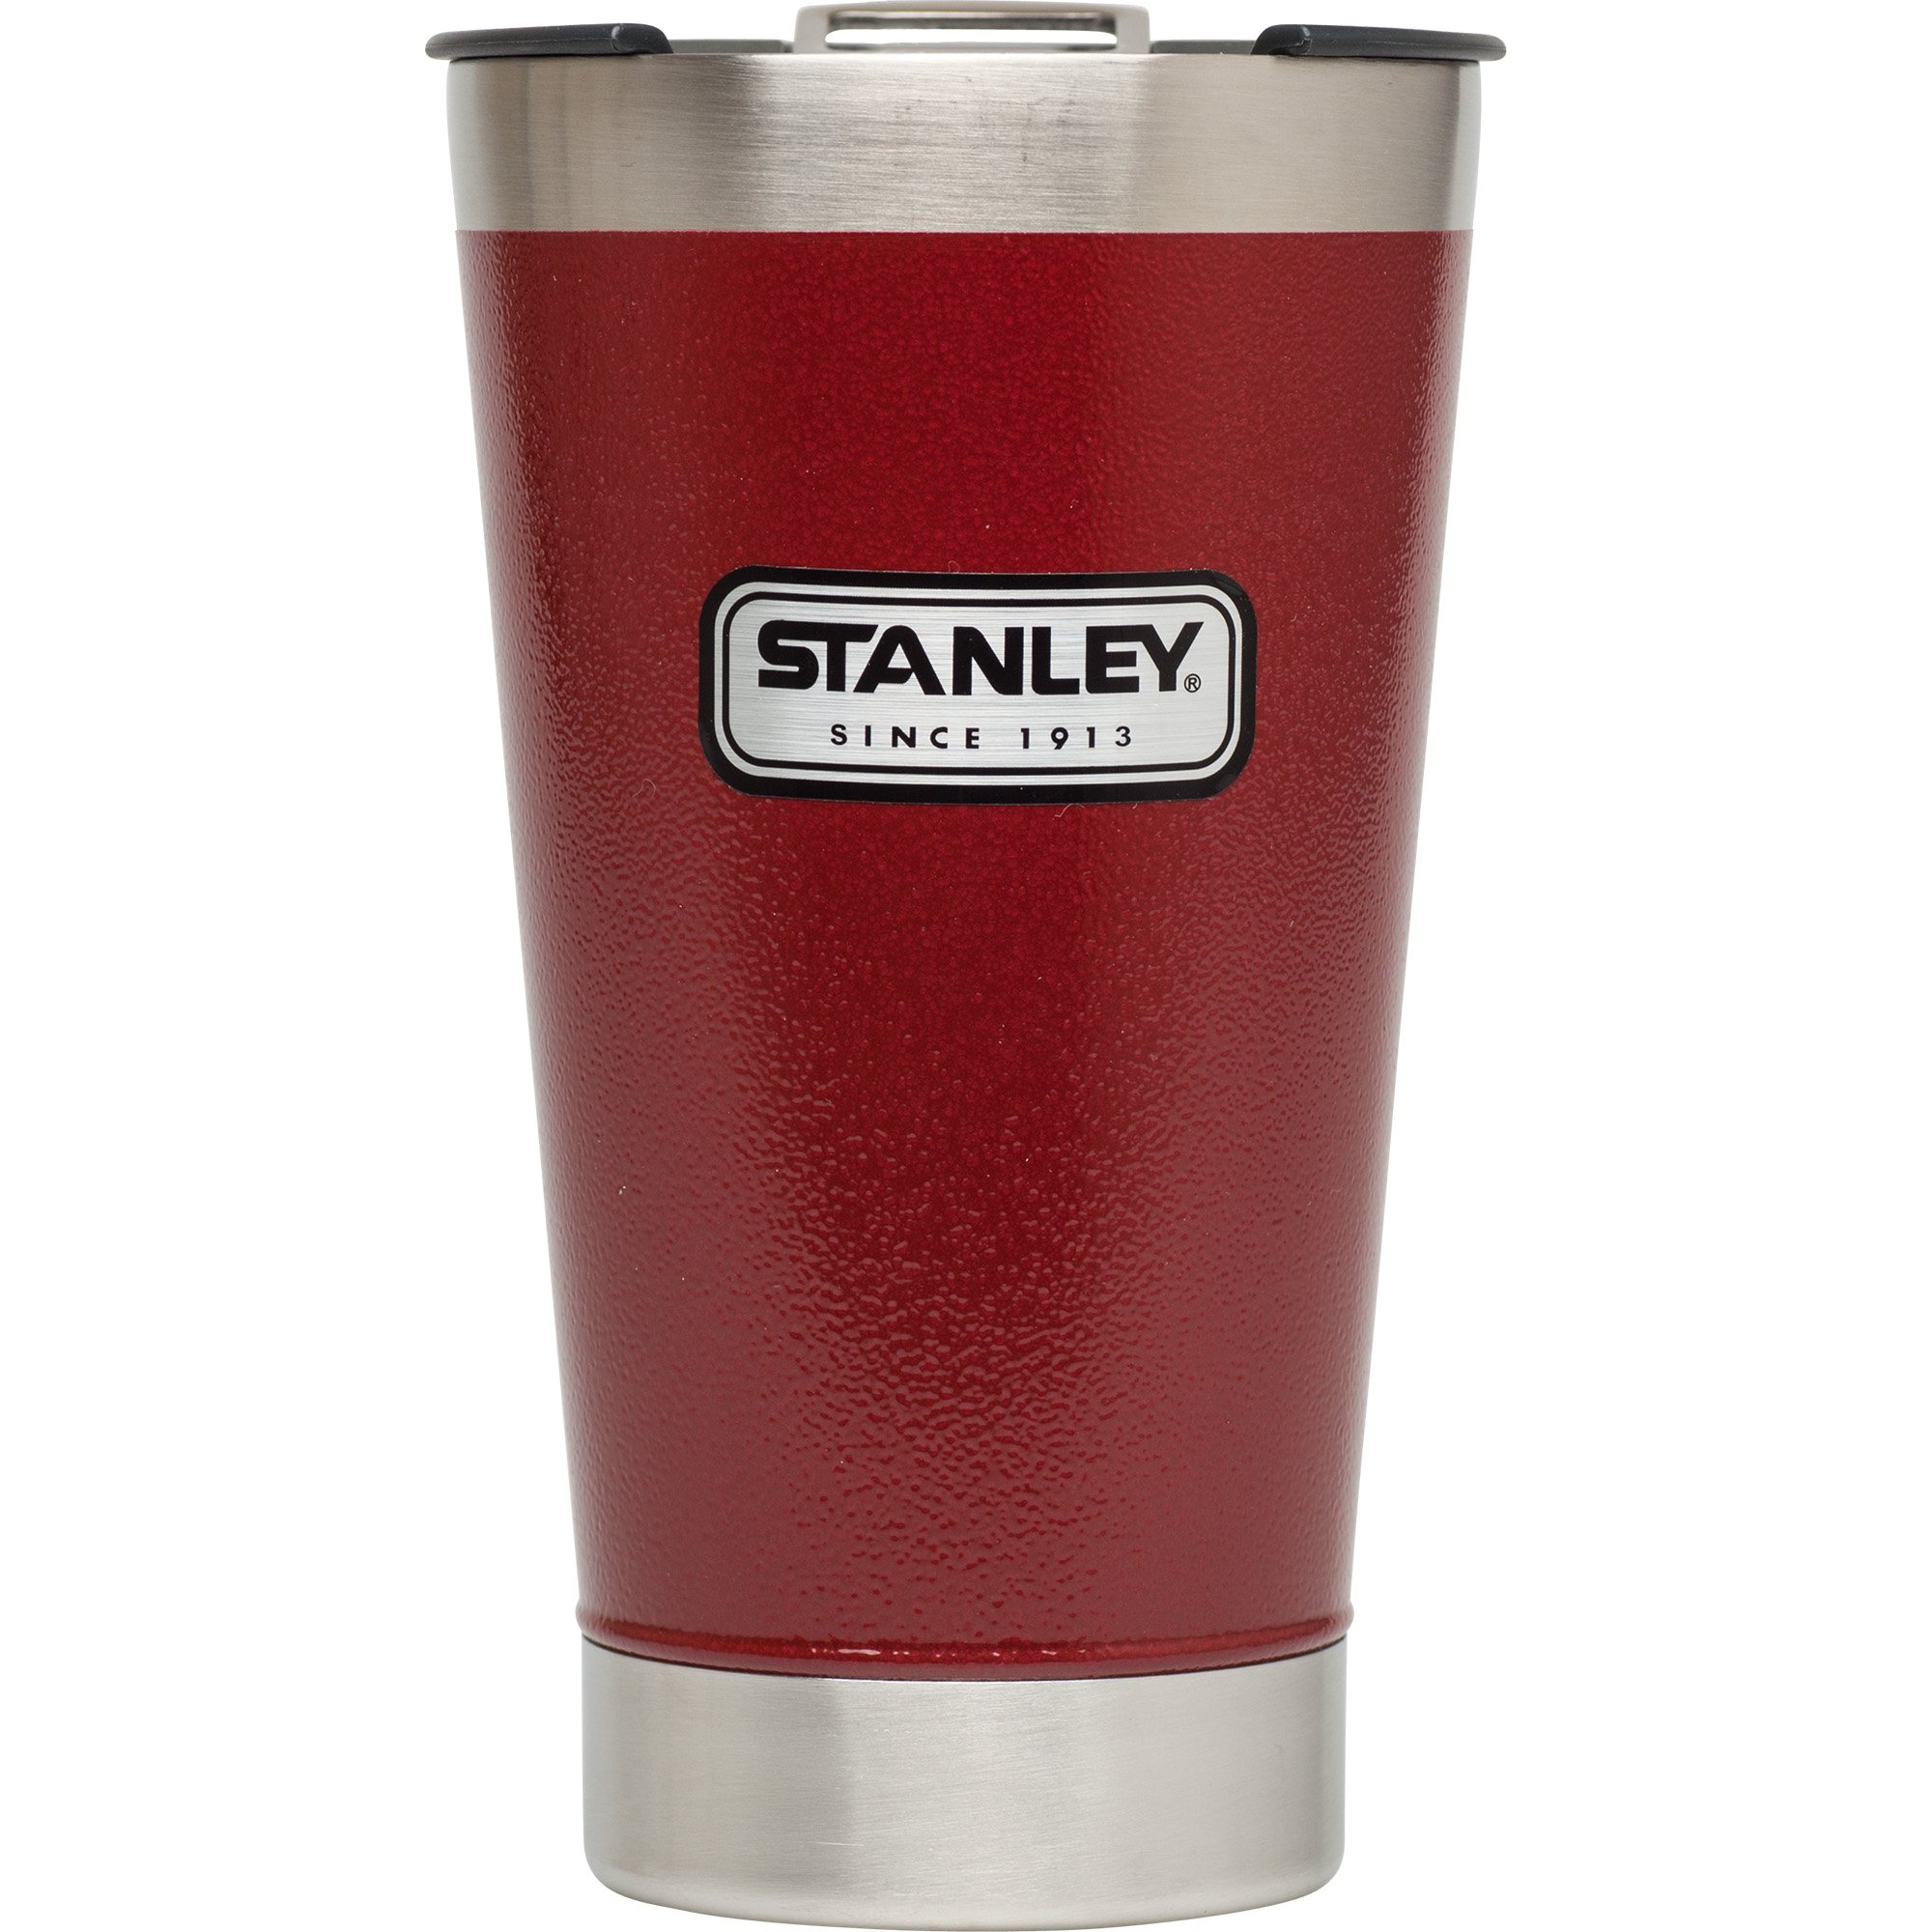 Buy Stanley Cup Now!